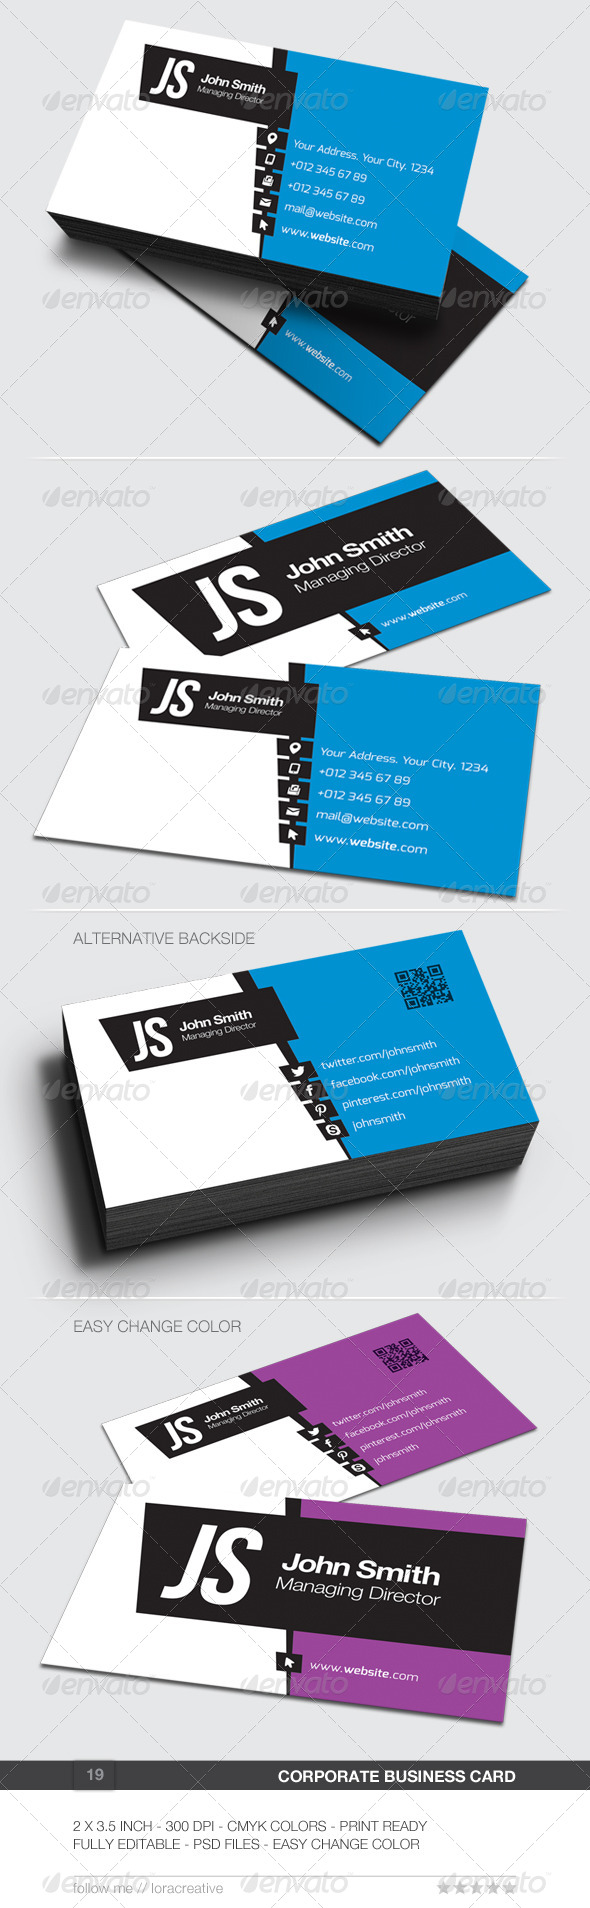 GraphicRiver Corporate Business Card 19 6480066